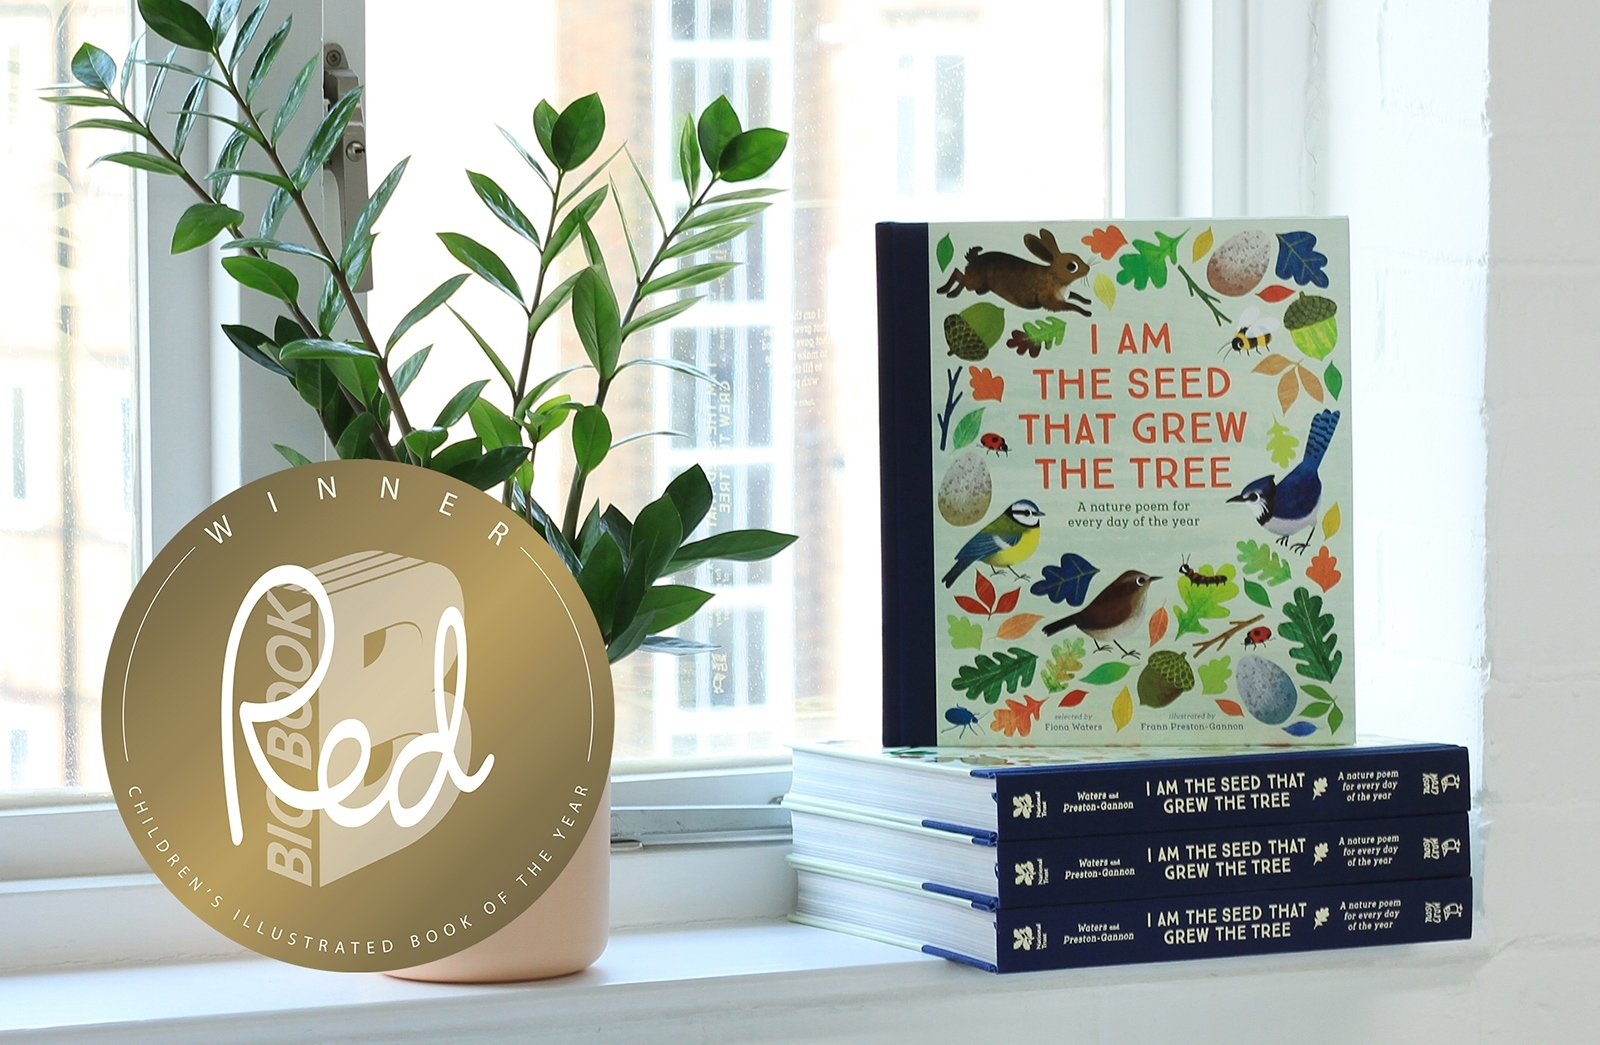 I Am The Seed That Grew The Tree wins Big Book Prize 2019